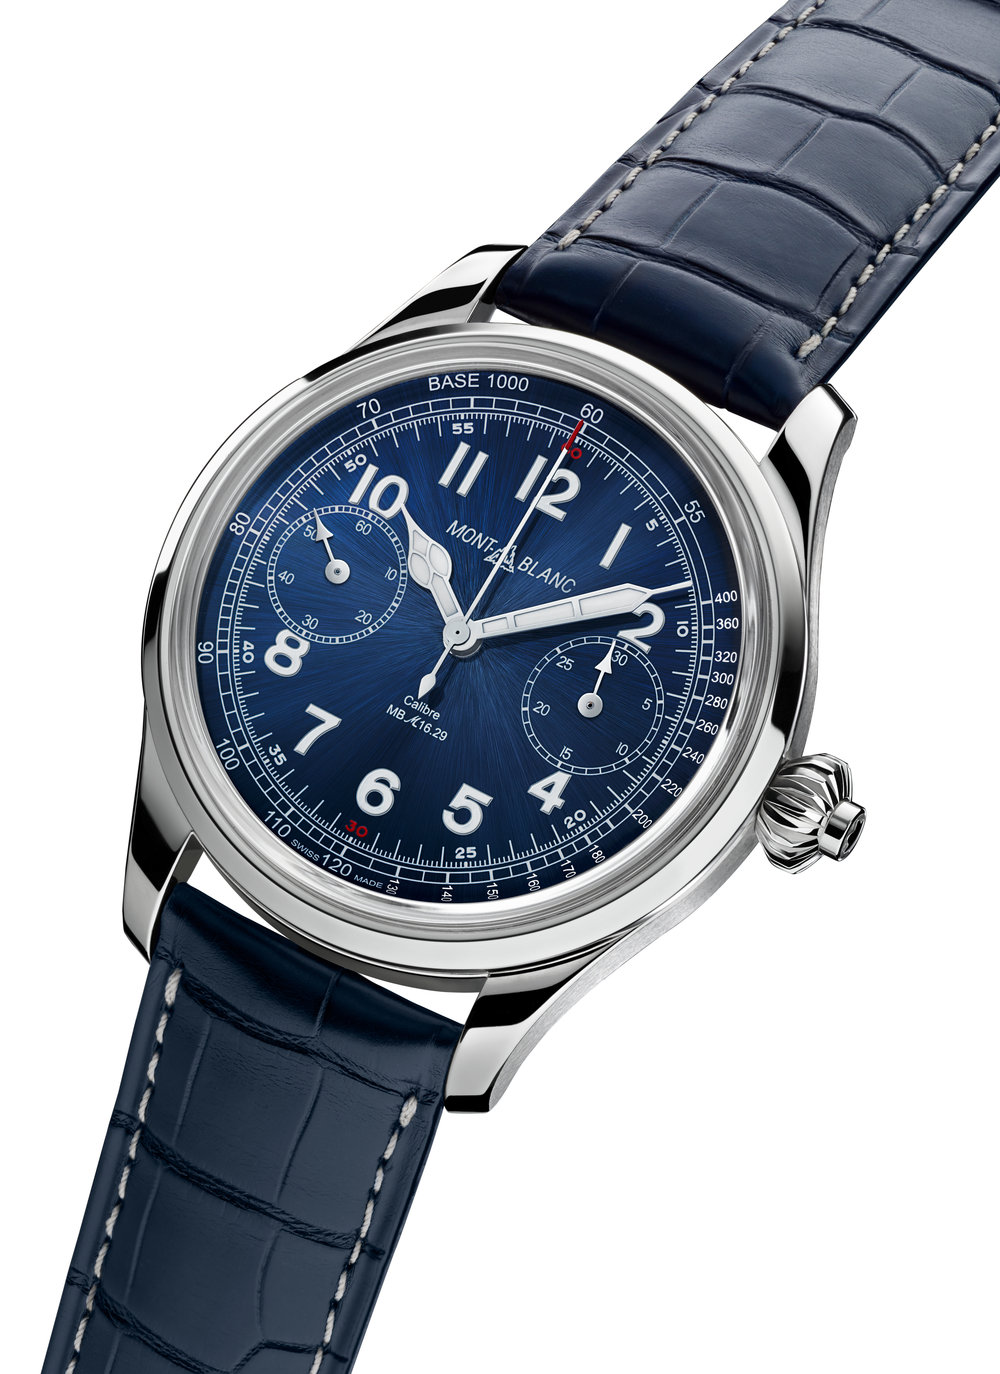 Chronograph Watch Prize: